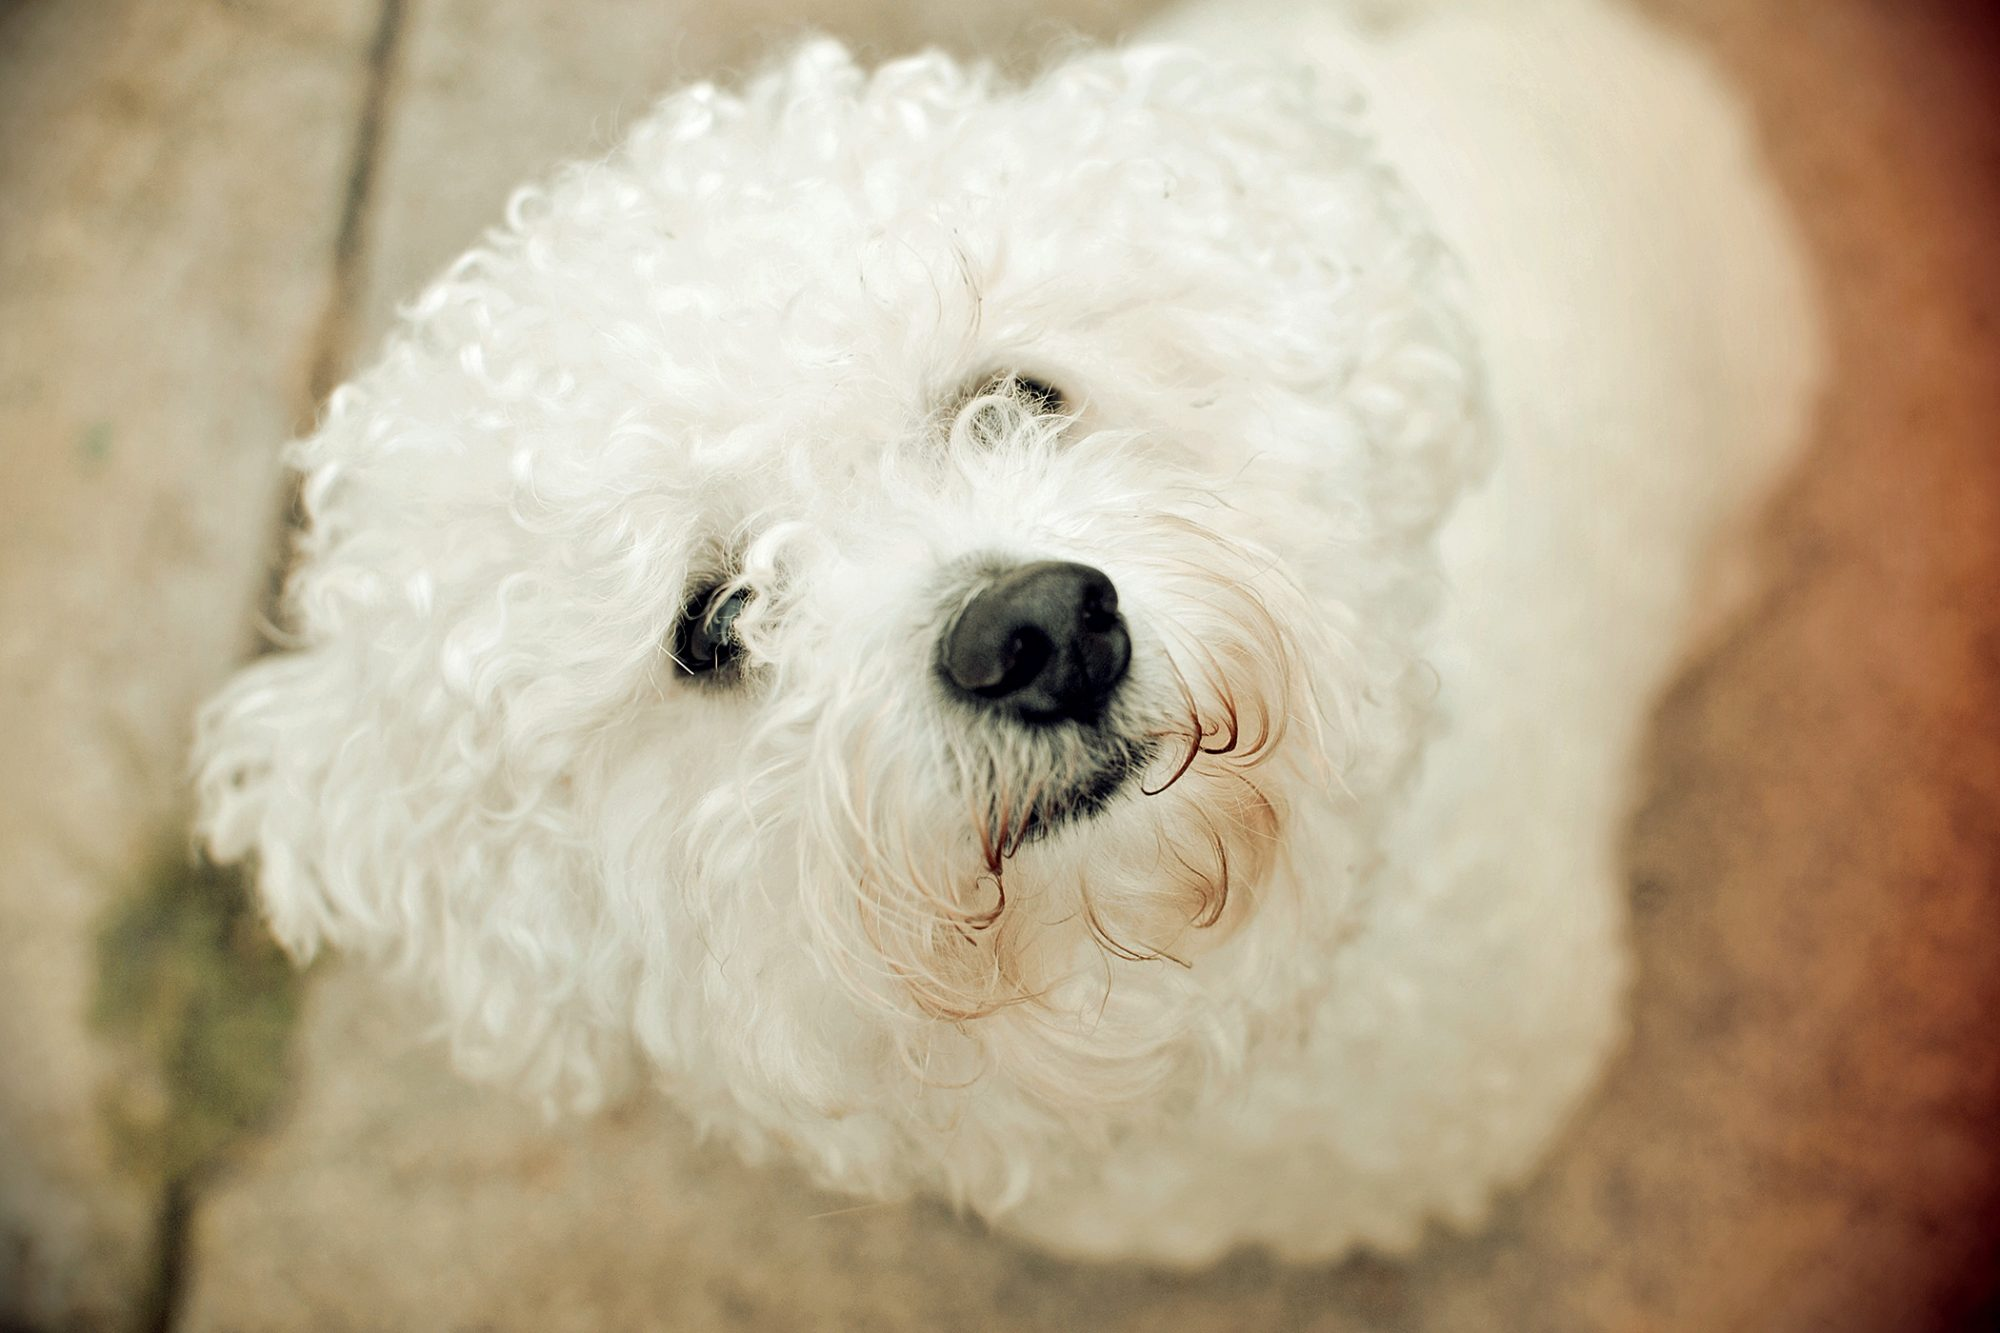 Curly haired bichon frise looks up at camera